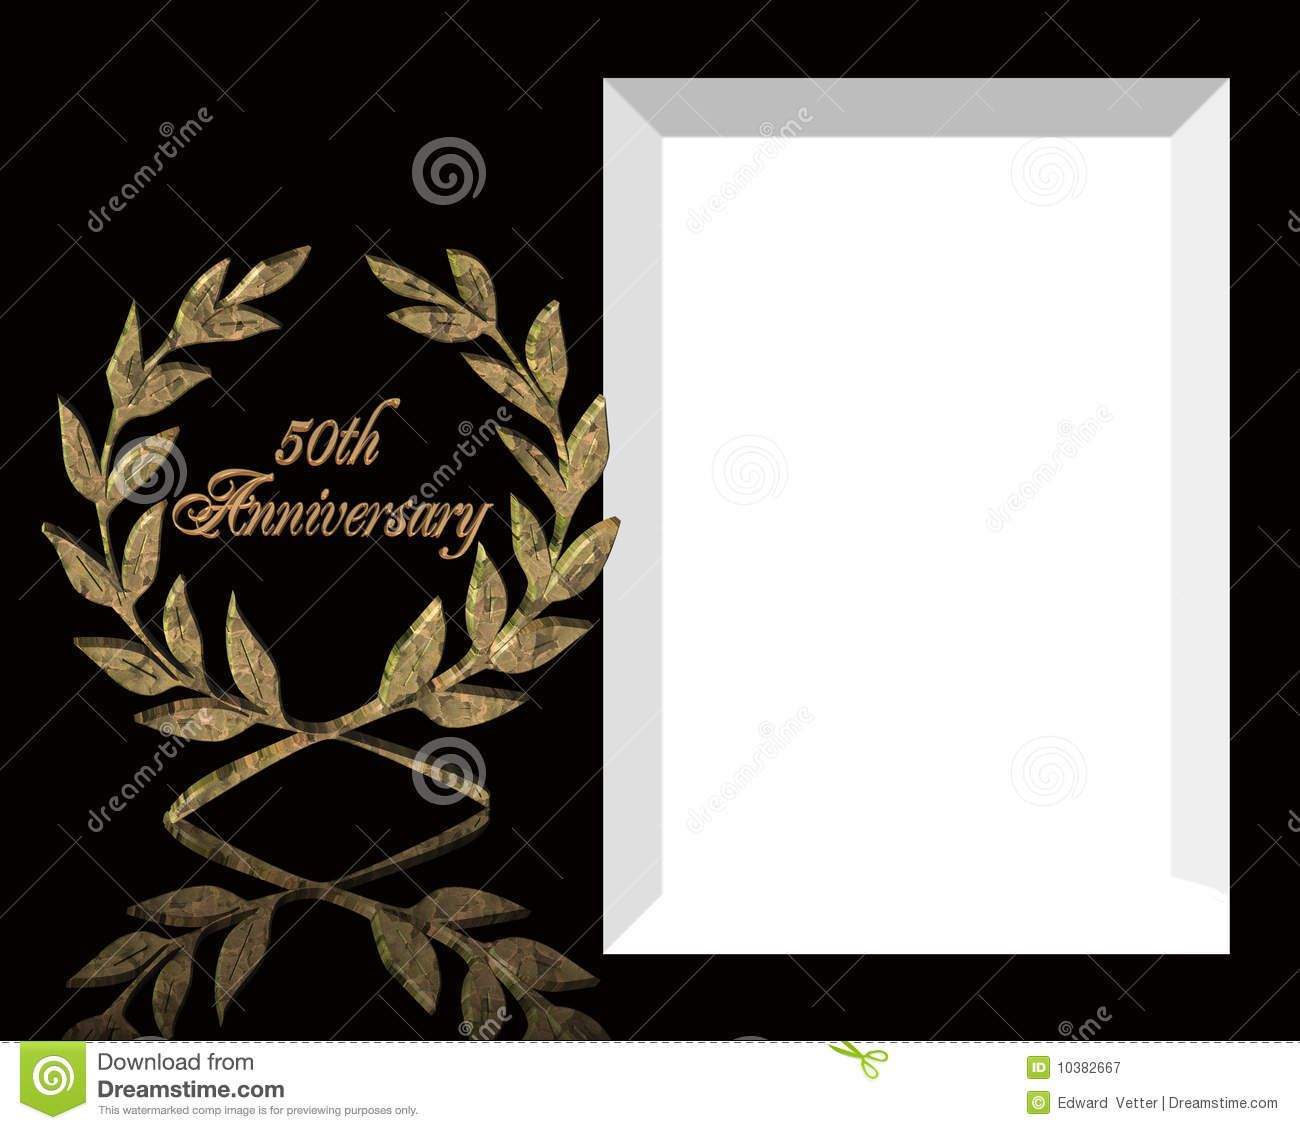 004 Unforgettable 50th Wedding Anniversary Invitation Template Free Example  Download Golden Microsoft WordFull